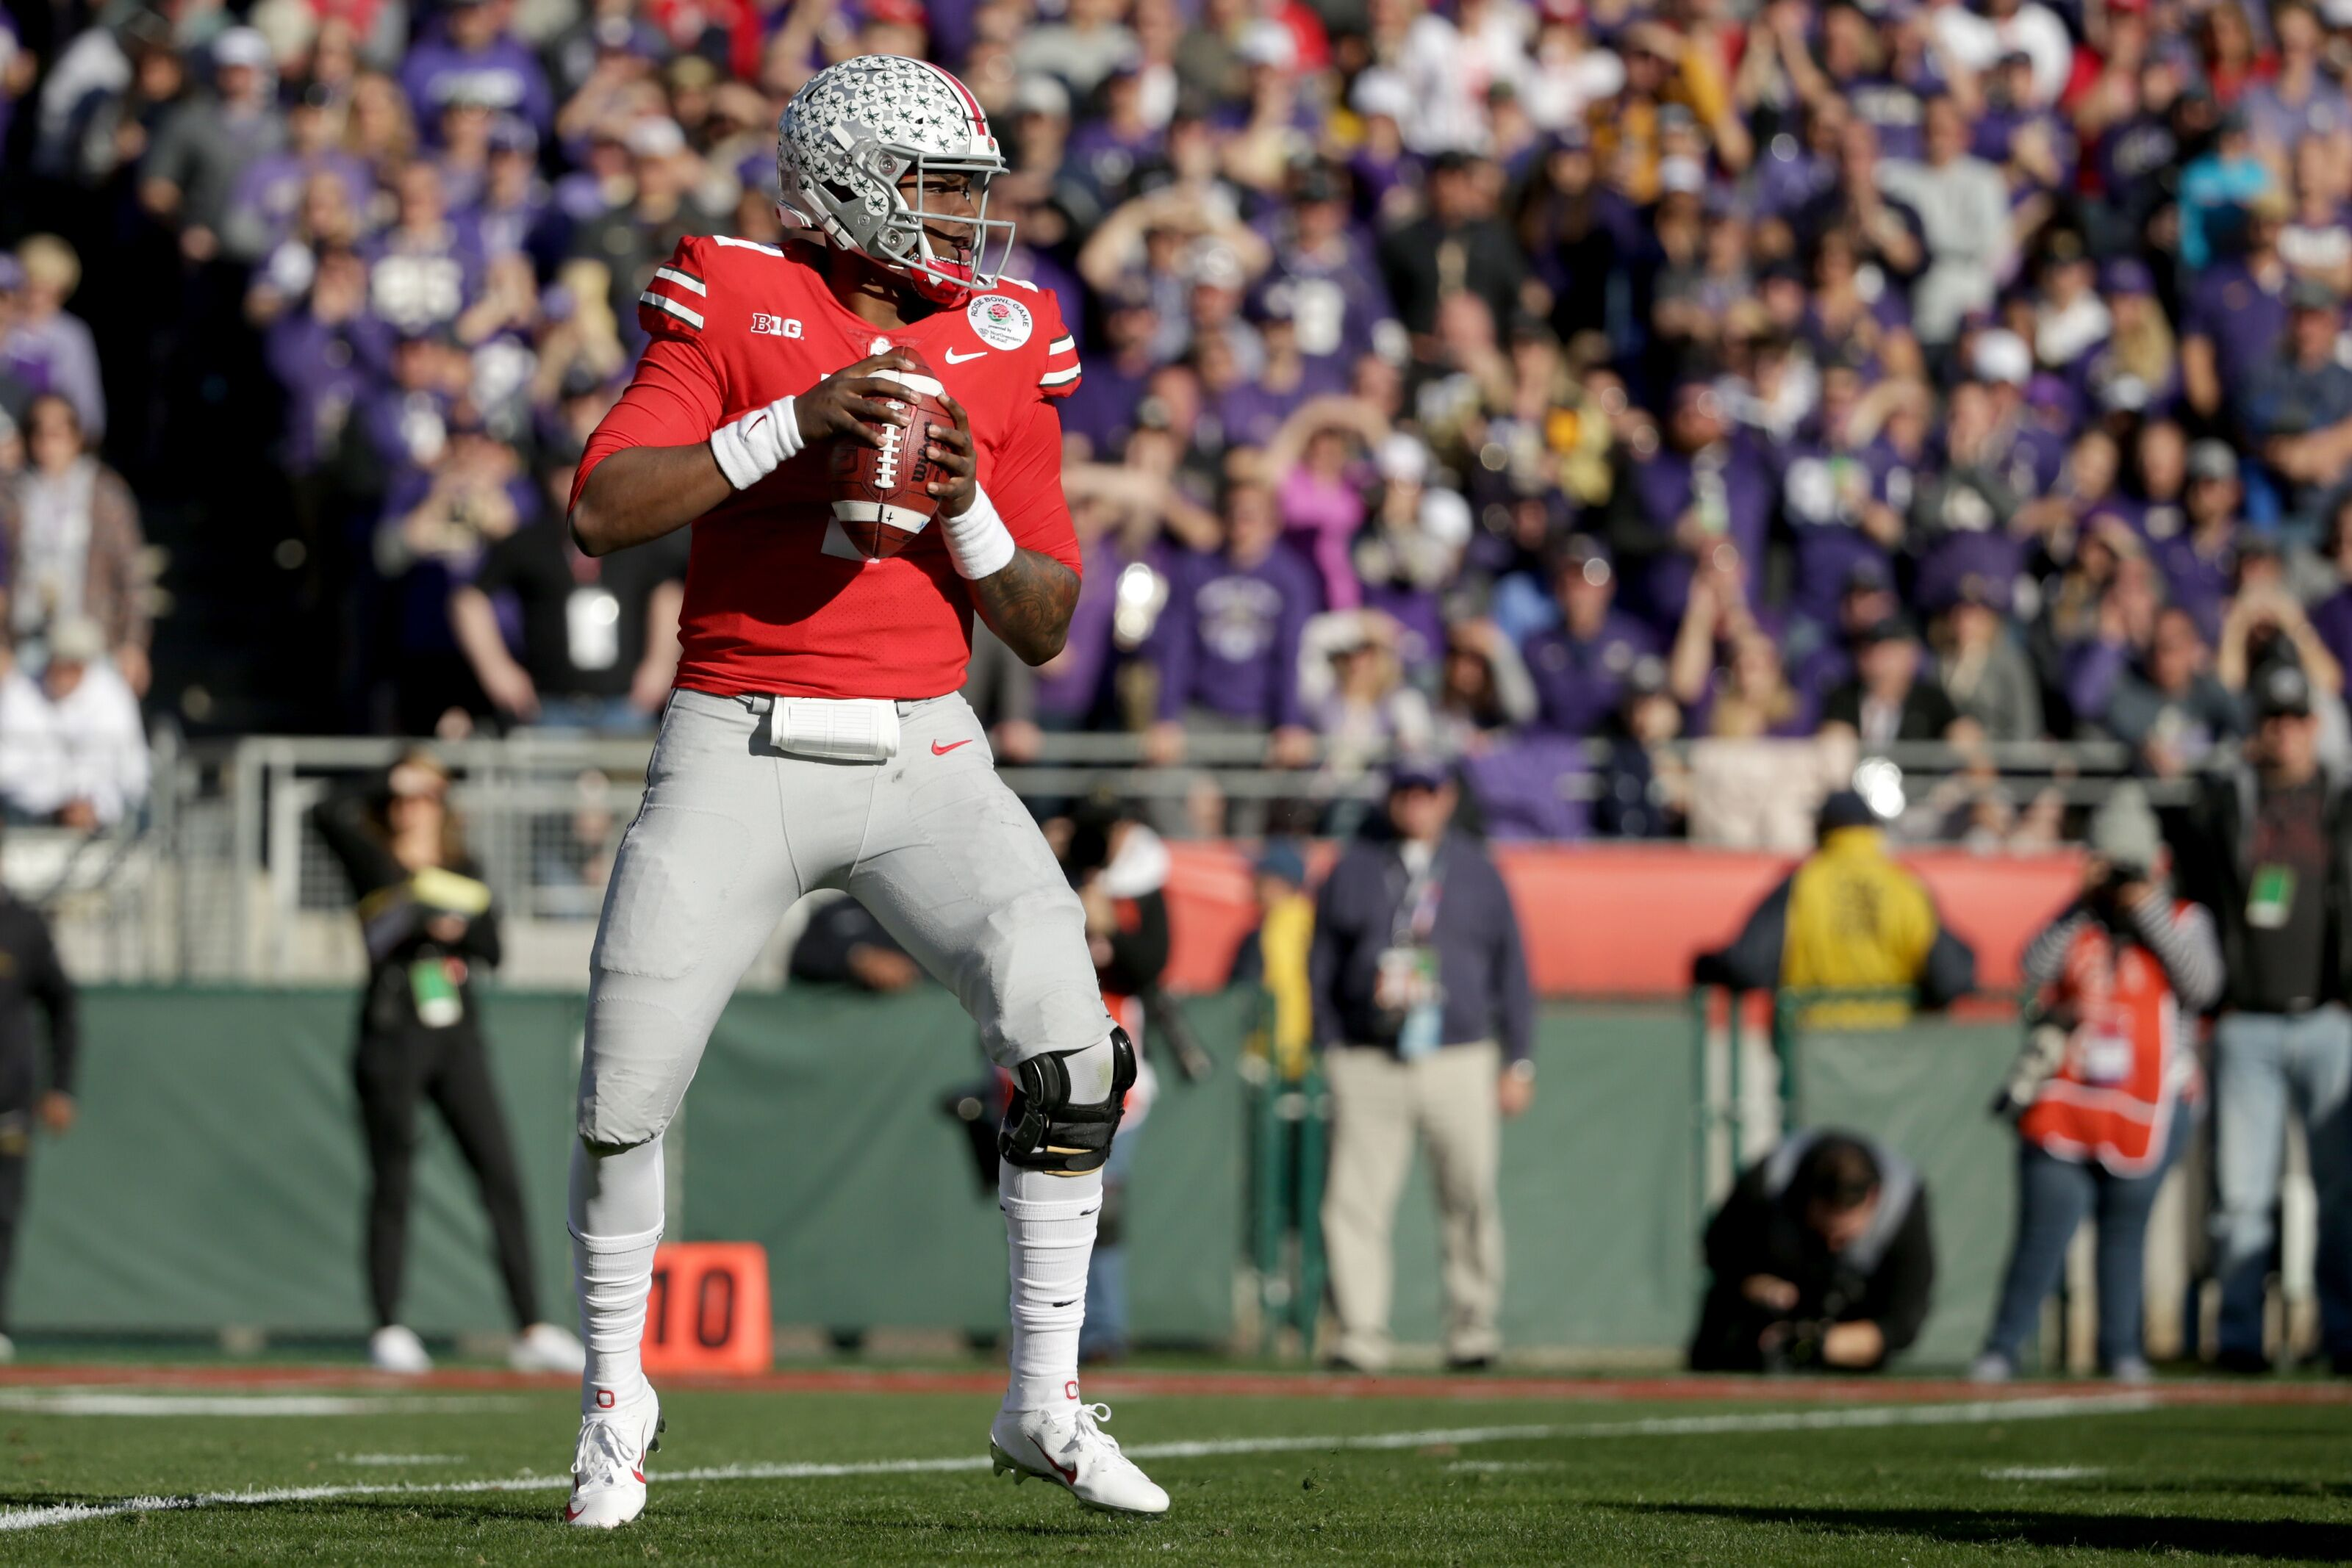 Washington Redskins: Pros and cons of trading up for Dwayne Haskins